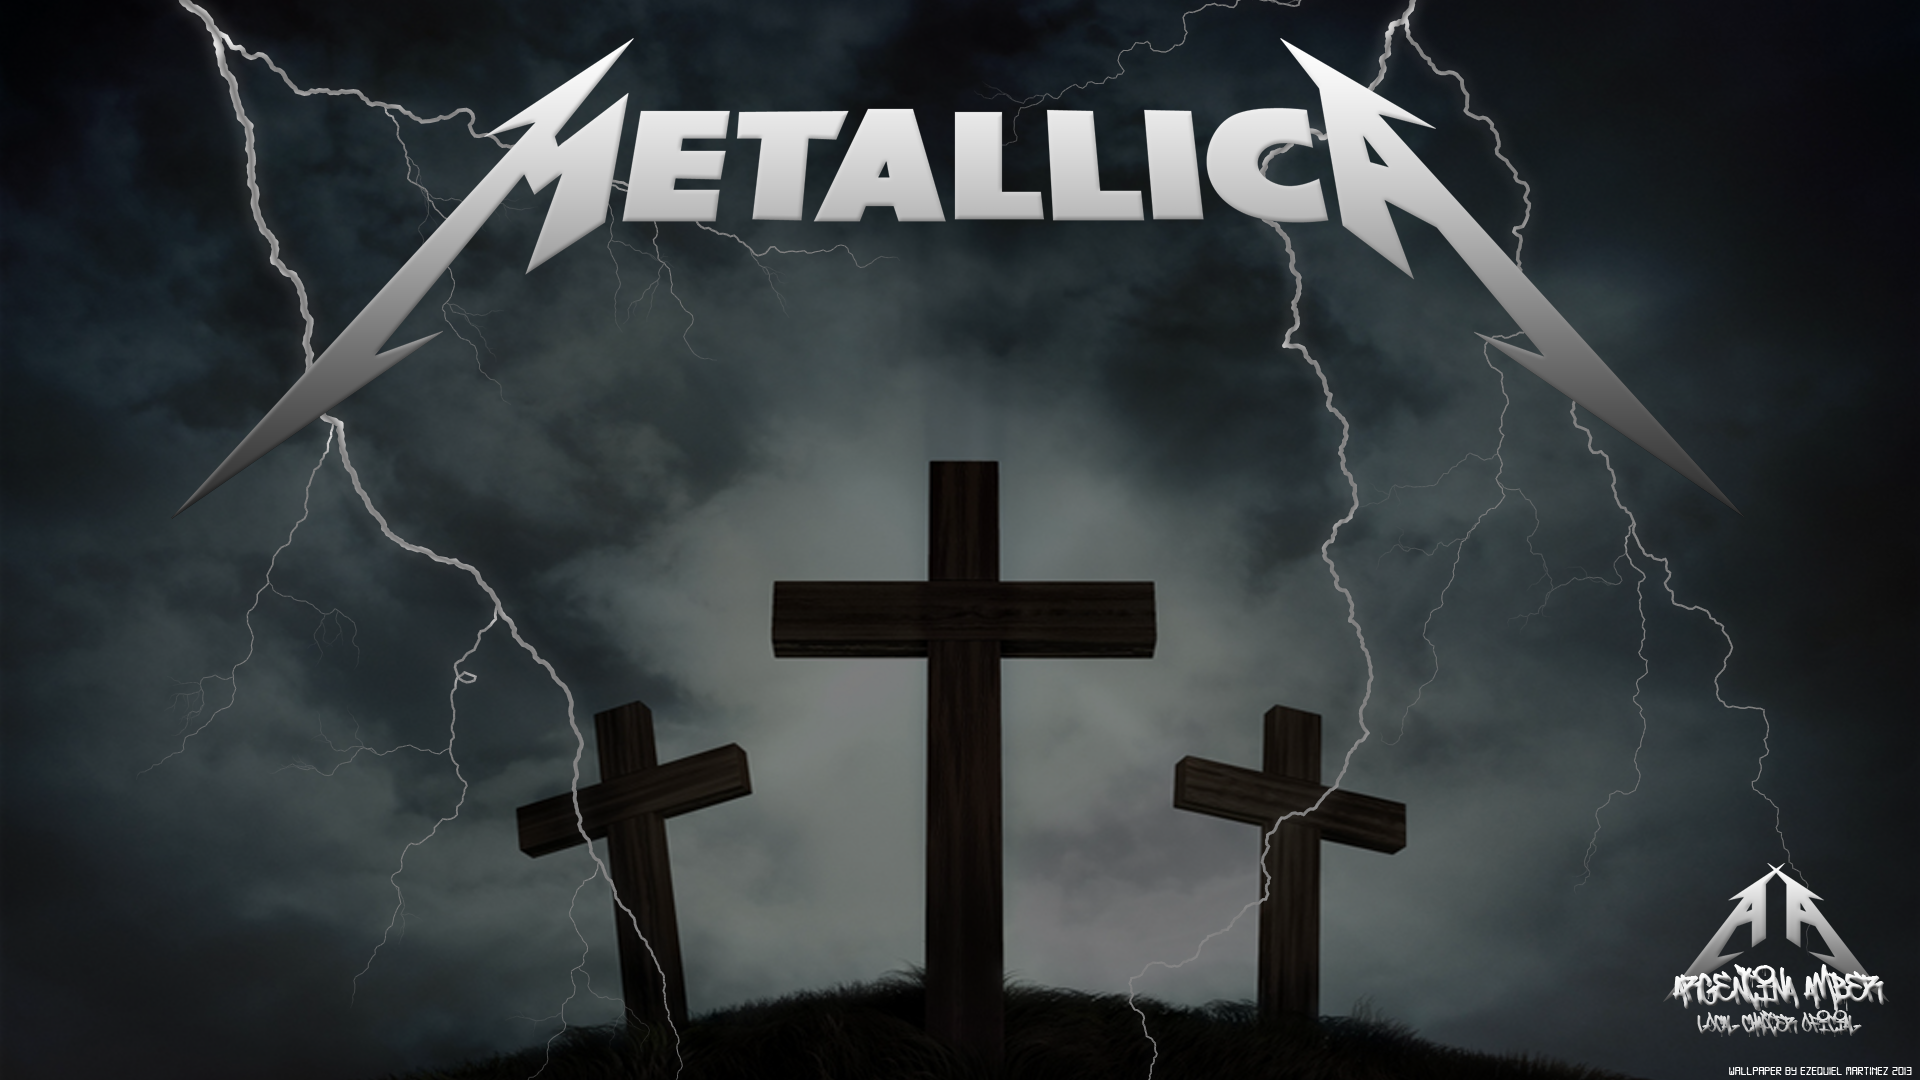 Metallica Wallpaper A13 - HD Desktop Wallpapers | 4k HD